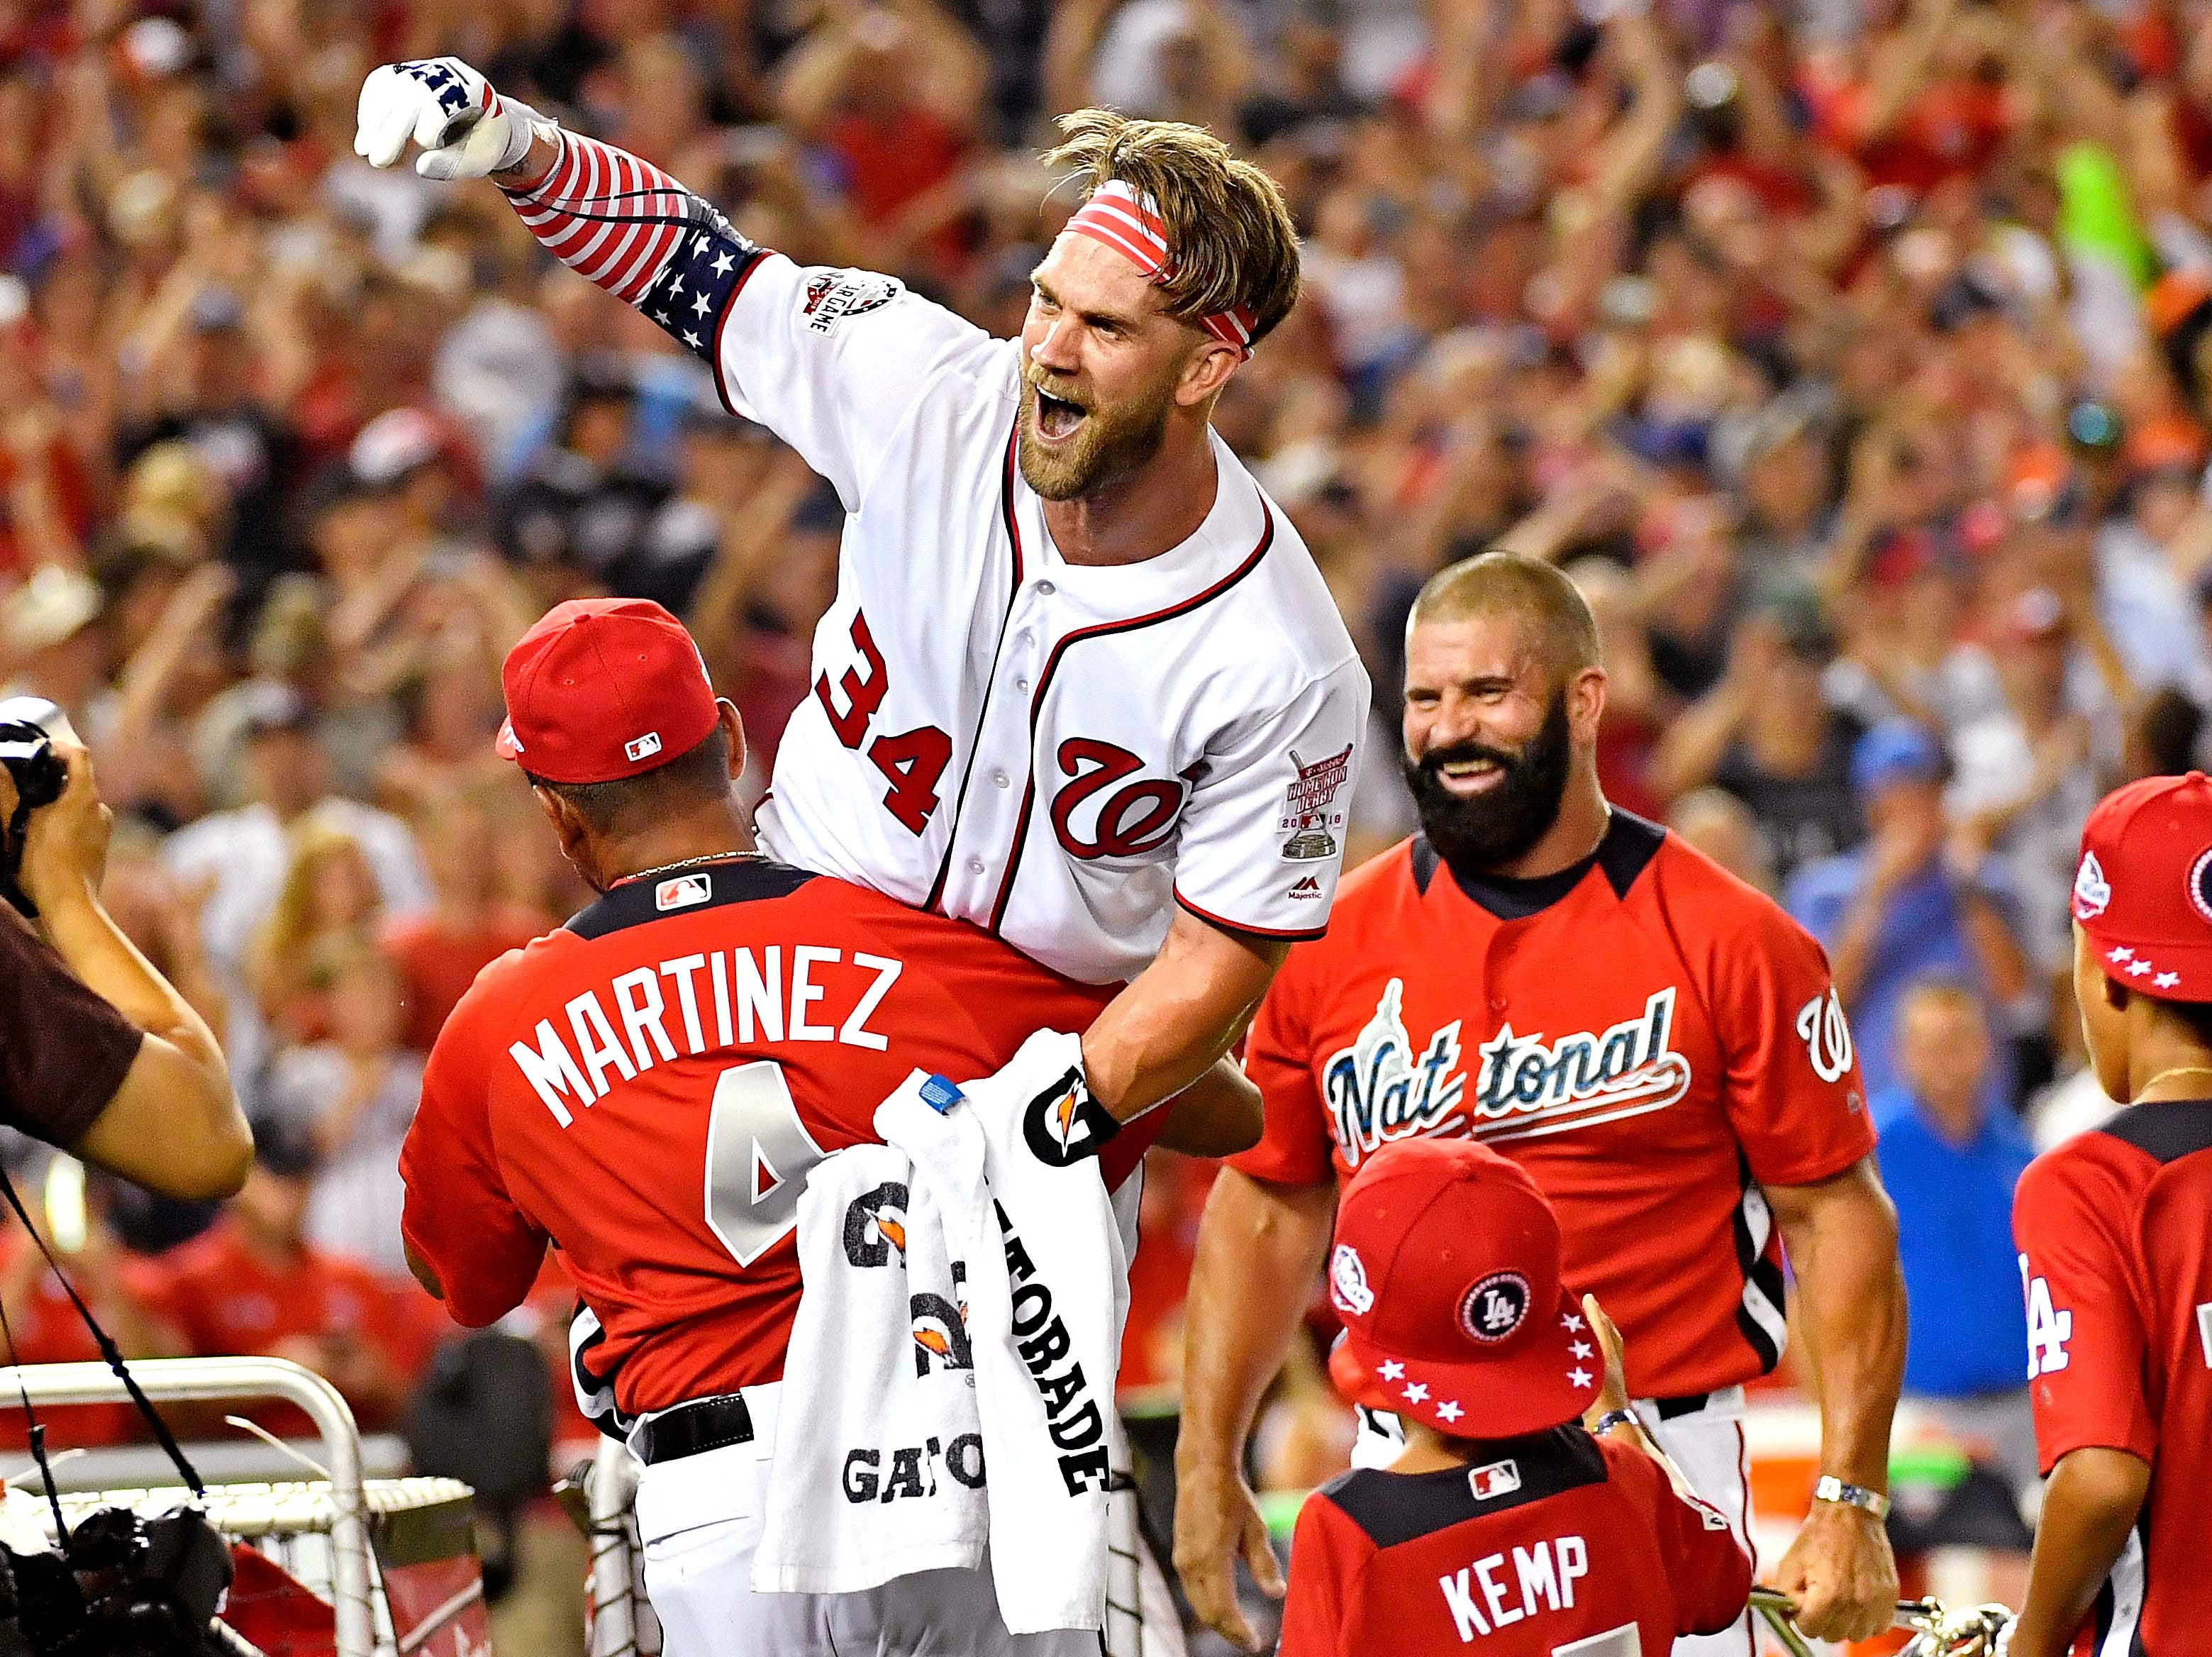 July 16: Washington Nationals right fielder Bryce Harper celebrates after winning the Home Run Derby at Nationals Park.